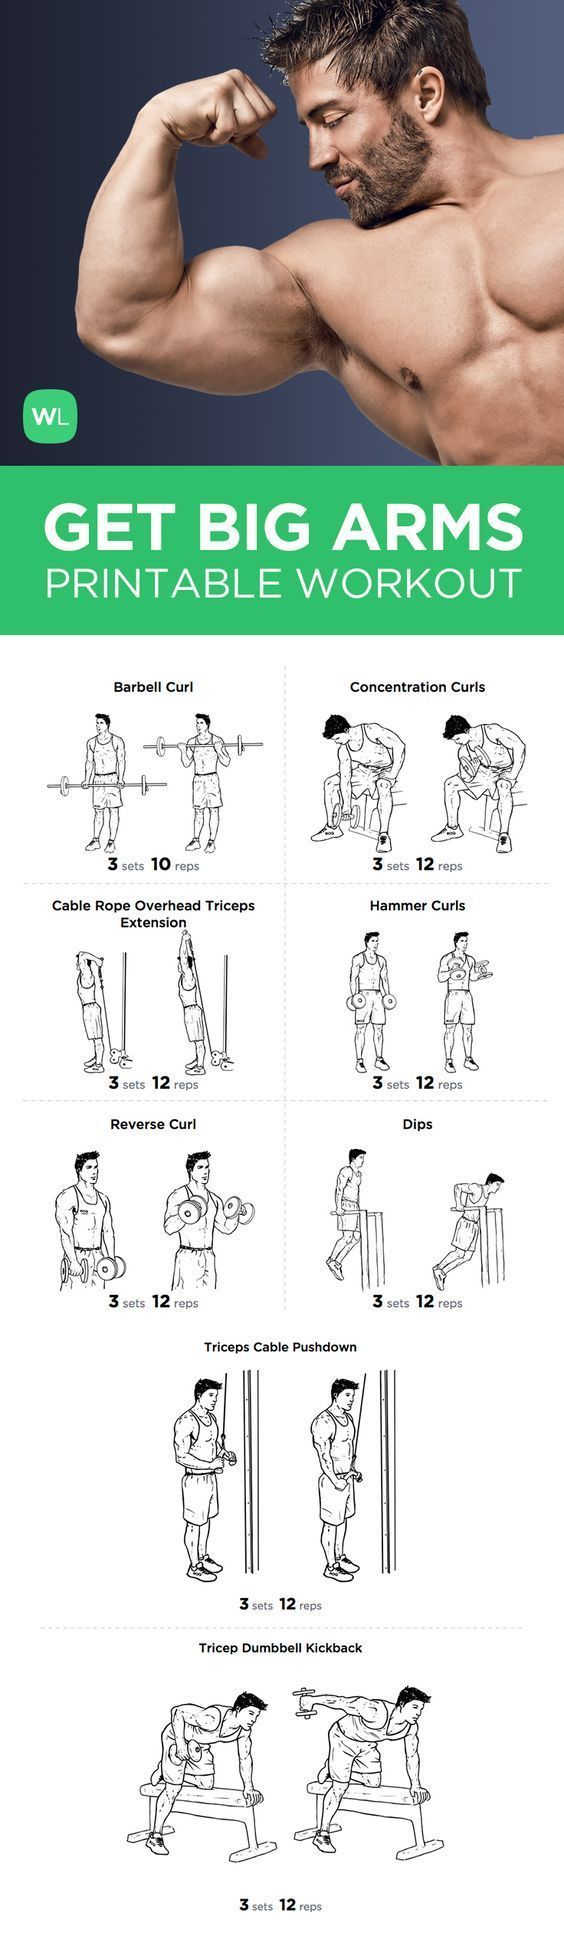 for a FREE PDF of this Bog Arms Bicep and Tricep printable workout with easy-to-follow exercise illustrations.